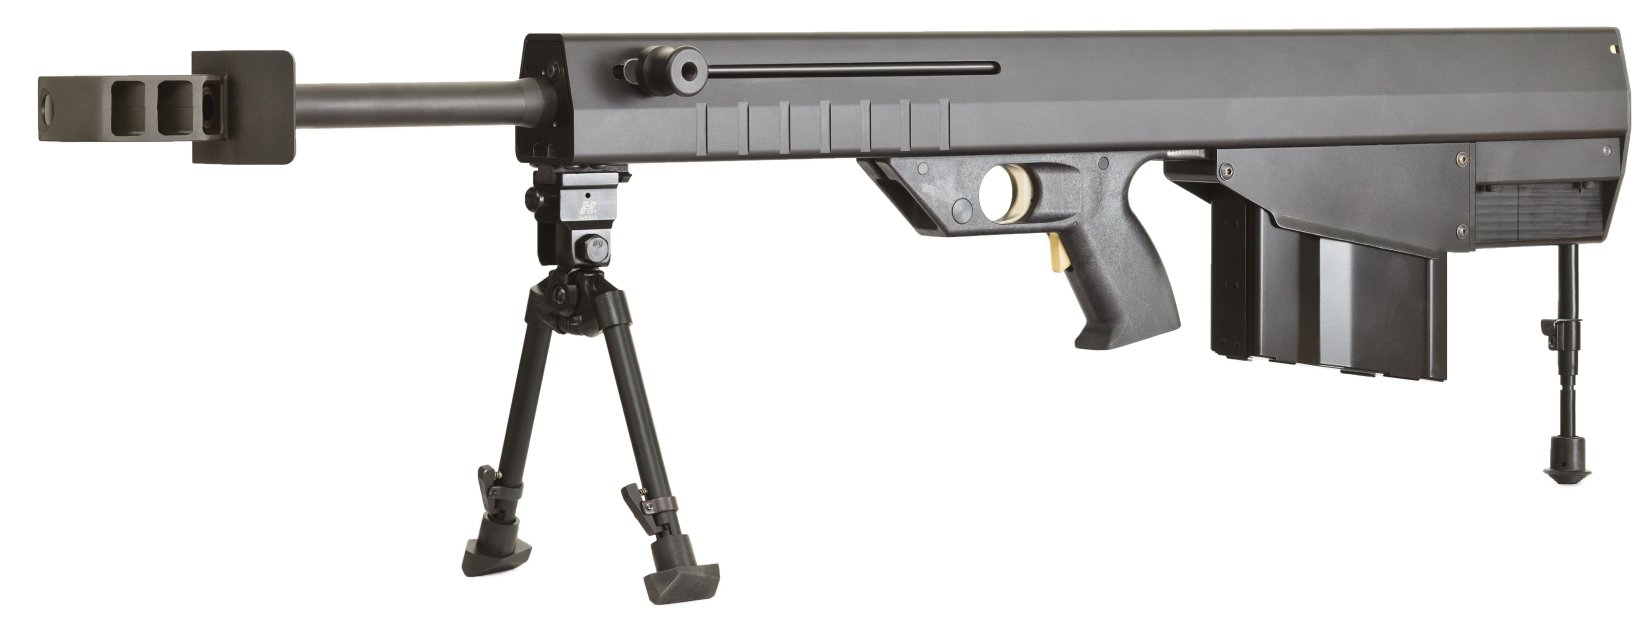 St  George Arms Leader 50 A1 Ultra-Lightweight, Compact